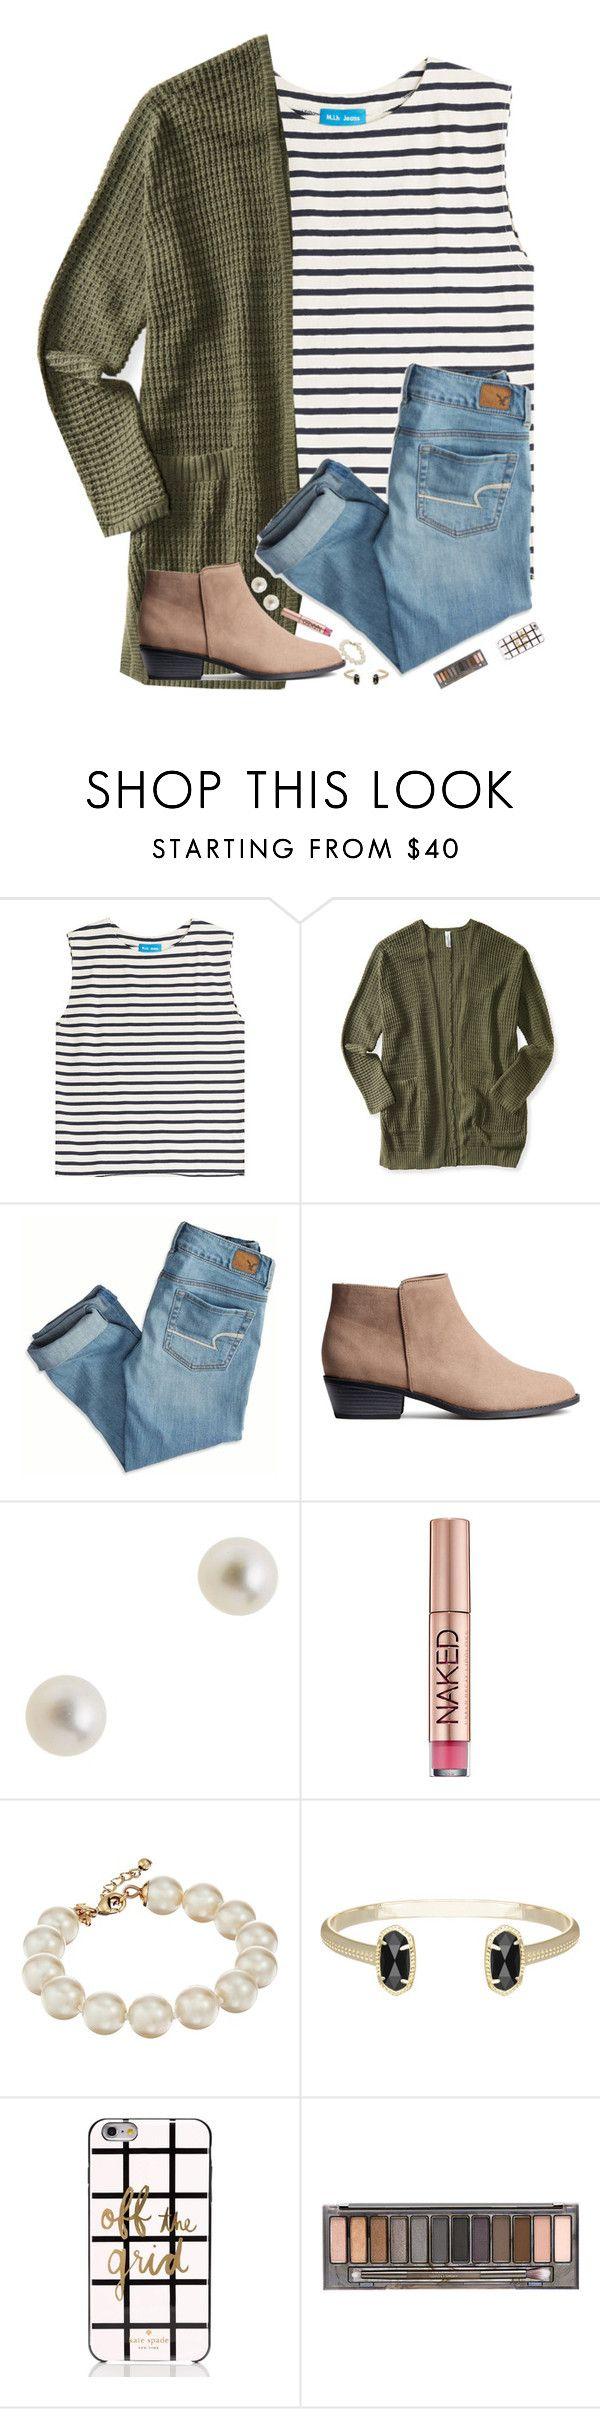 """""""Going to get lunch now❤️"""" by hgw8503 ❤ liked on Polyvore featuring M.i.h Jeans, Aéropostale, American Eagle Outfitters, J.Crew, Urban Decay, Kate Spade and Kendra Scott"""